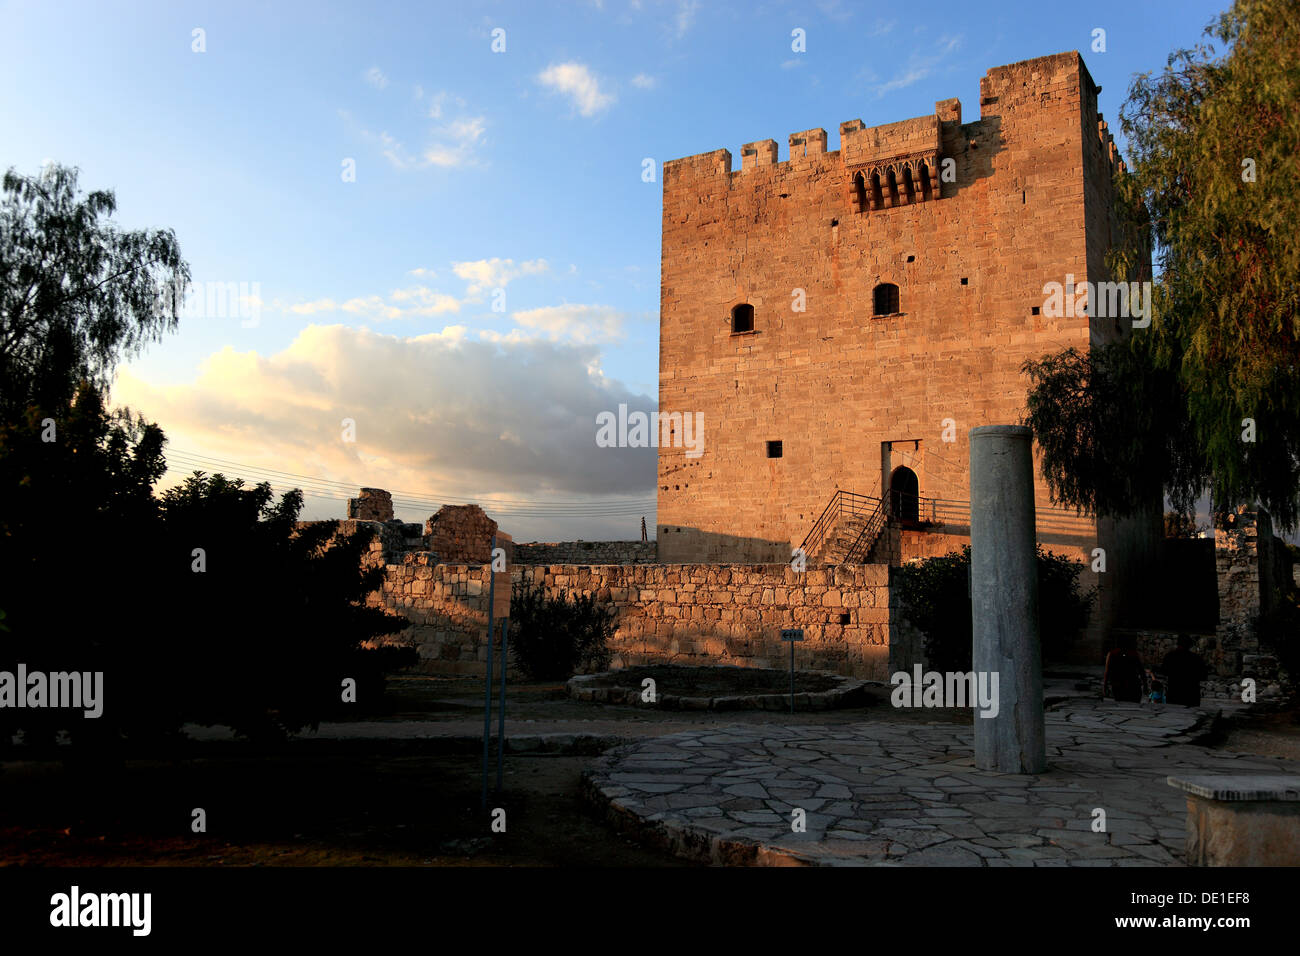 Cyprus Kolossi Castle is a stronghold outside the city of Limassol, Lemesos, Limassol, built in 121 - Stock Image